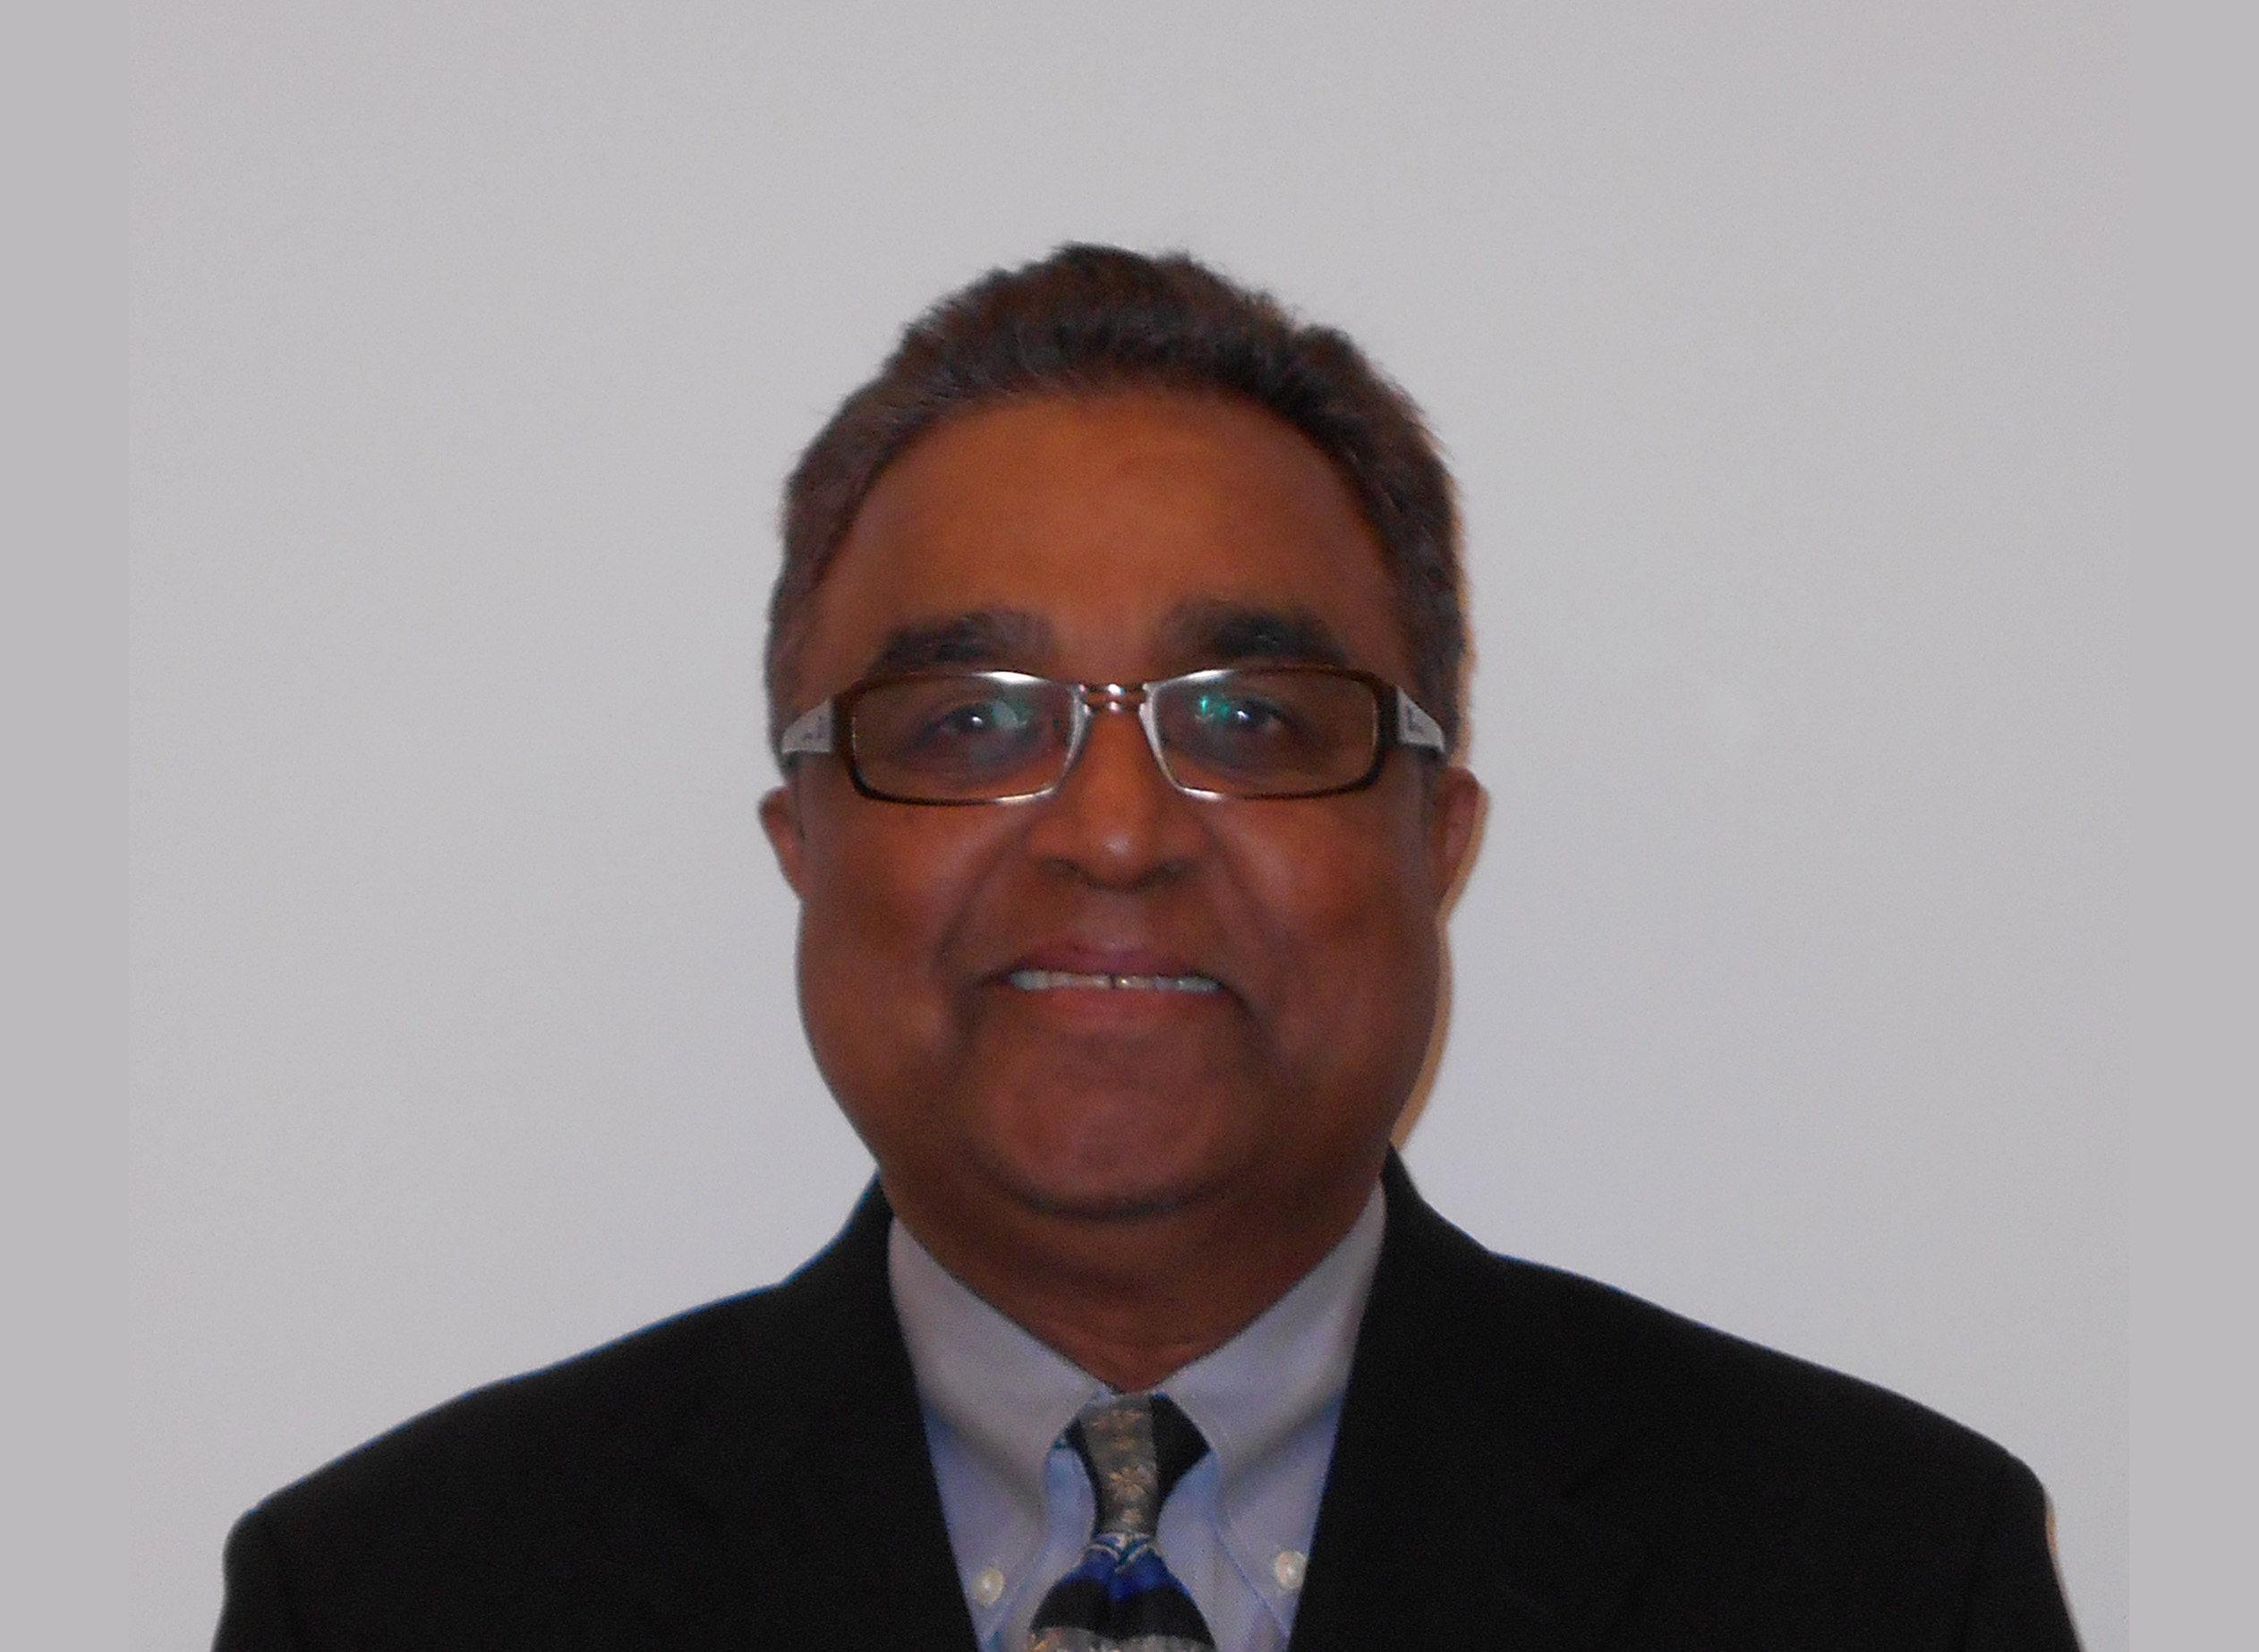 Vice-President, Finance and Chief Financial Officer - Albert Singh